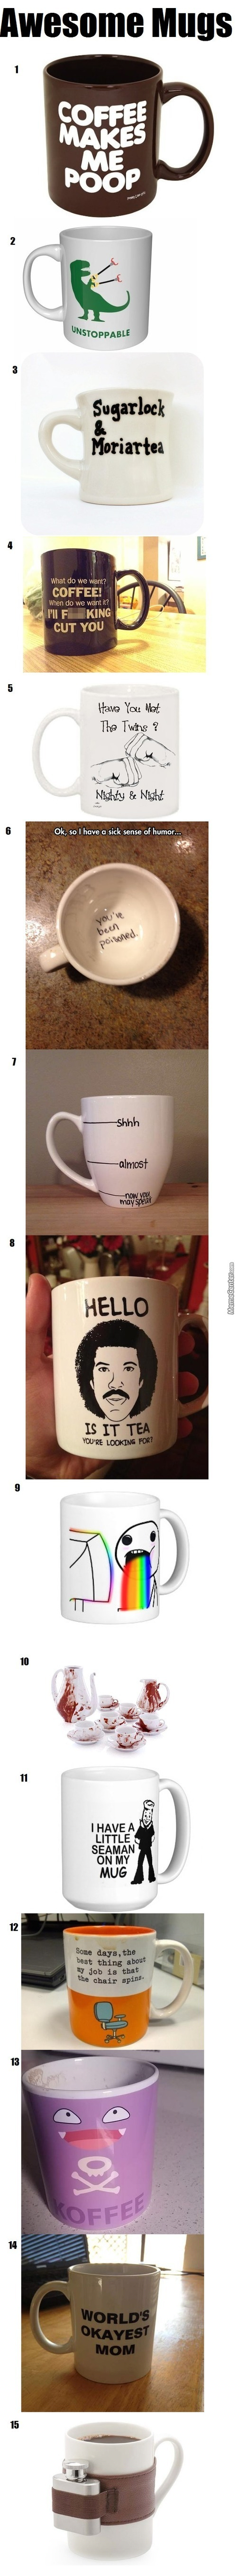 Awesome Mugs - Which One Is Your Favourite?